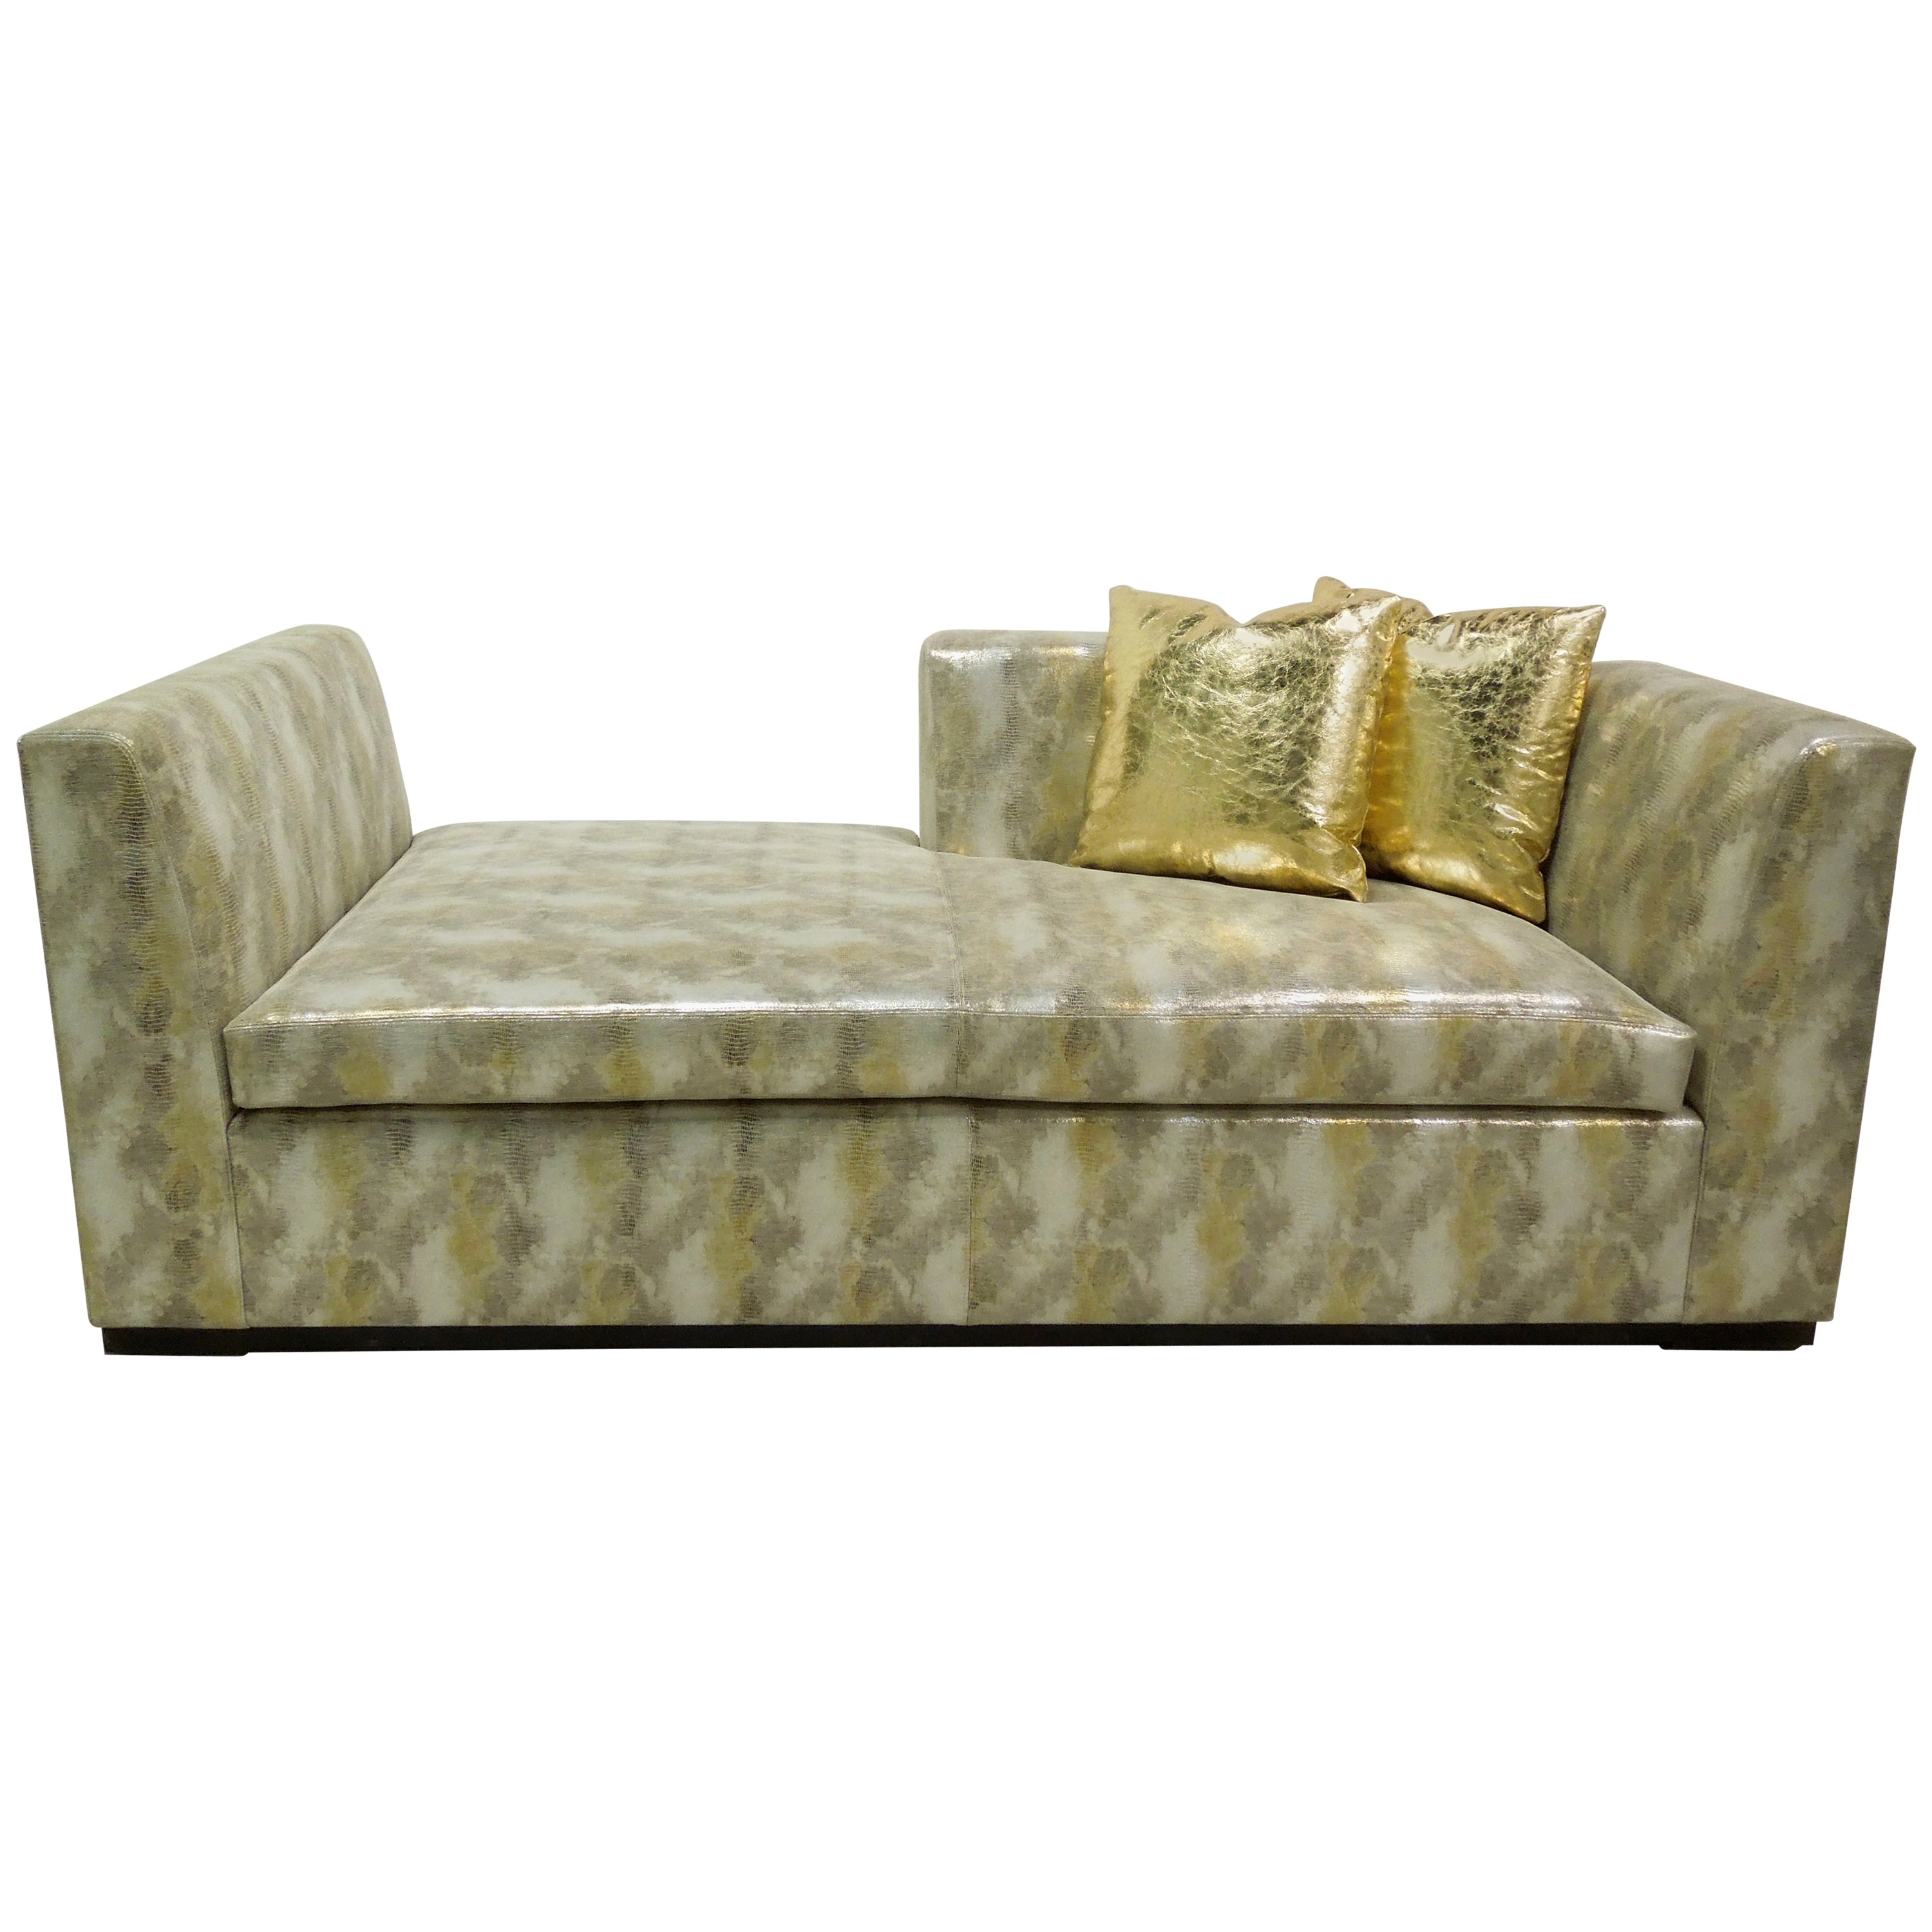 Custom Made Modern Metallic silver and Gold Leather Sofa/Chaise